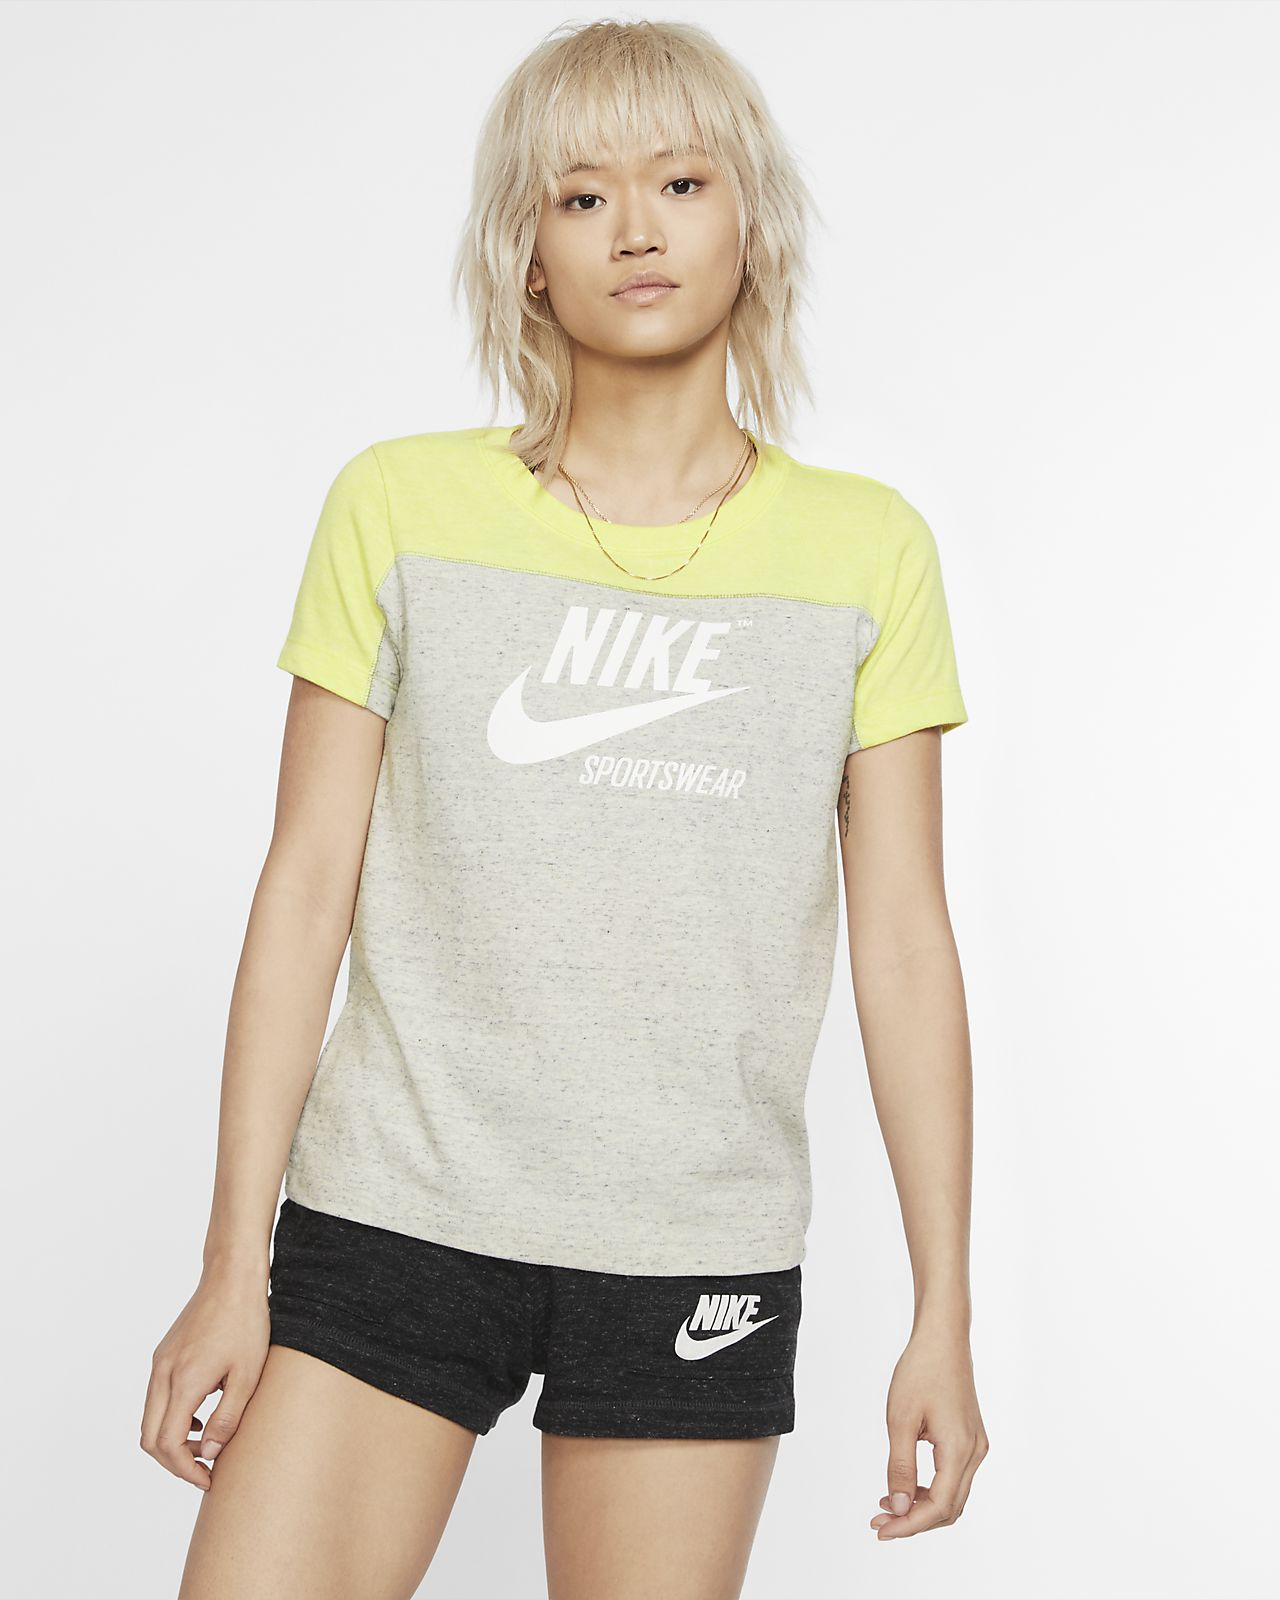 Nike Sportswear Vintage Women's Short-Sleeve Top